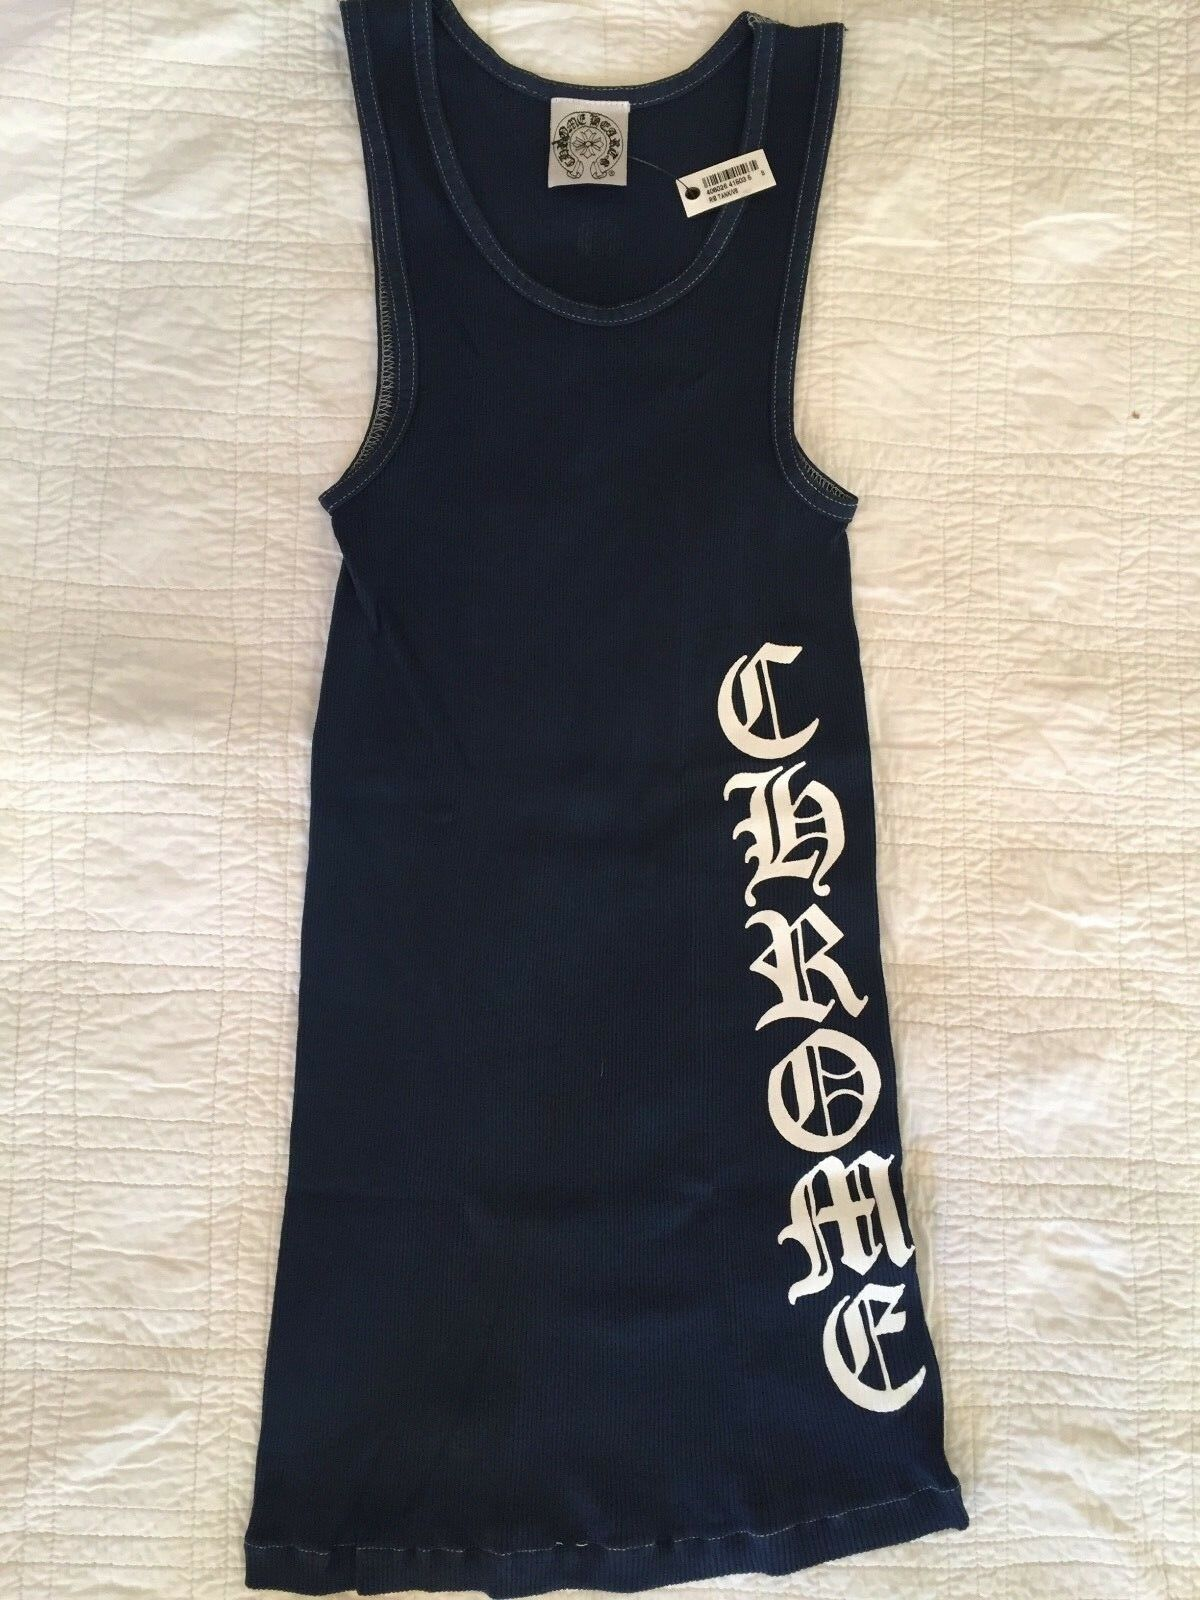 Lot of 25 Authentic Chrome Hearts Unisex Navy Ribbed Tank Top, Small, New, V8